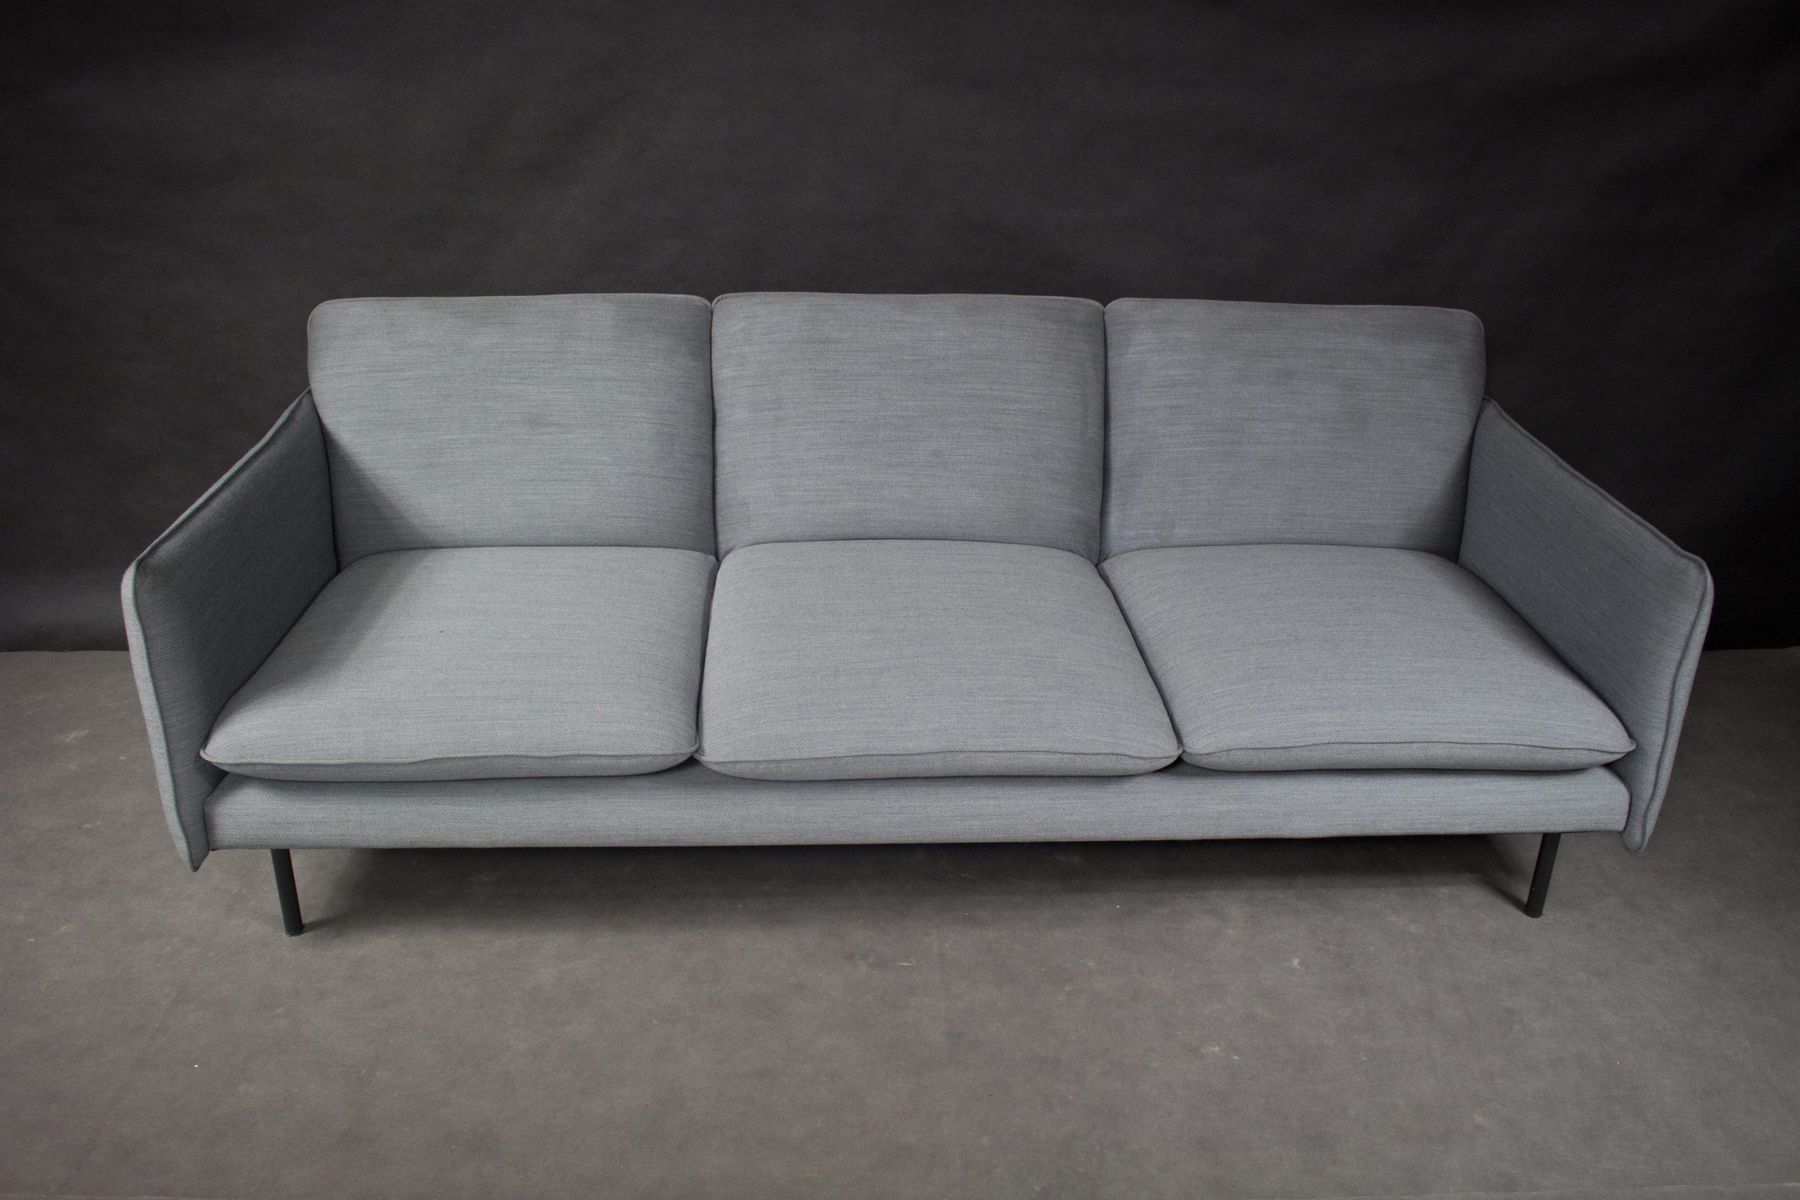 Danish Modern Boah Sofa from Bruunmunch for sale at Pamono